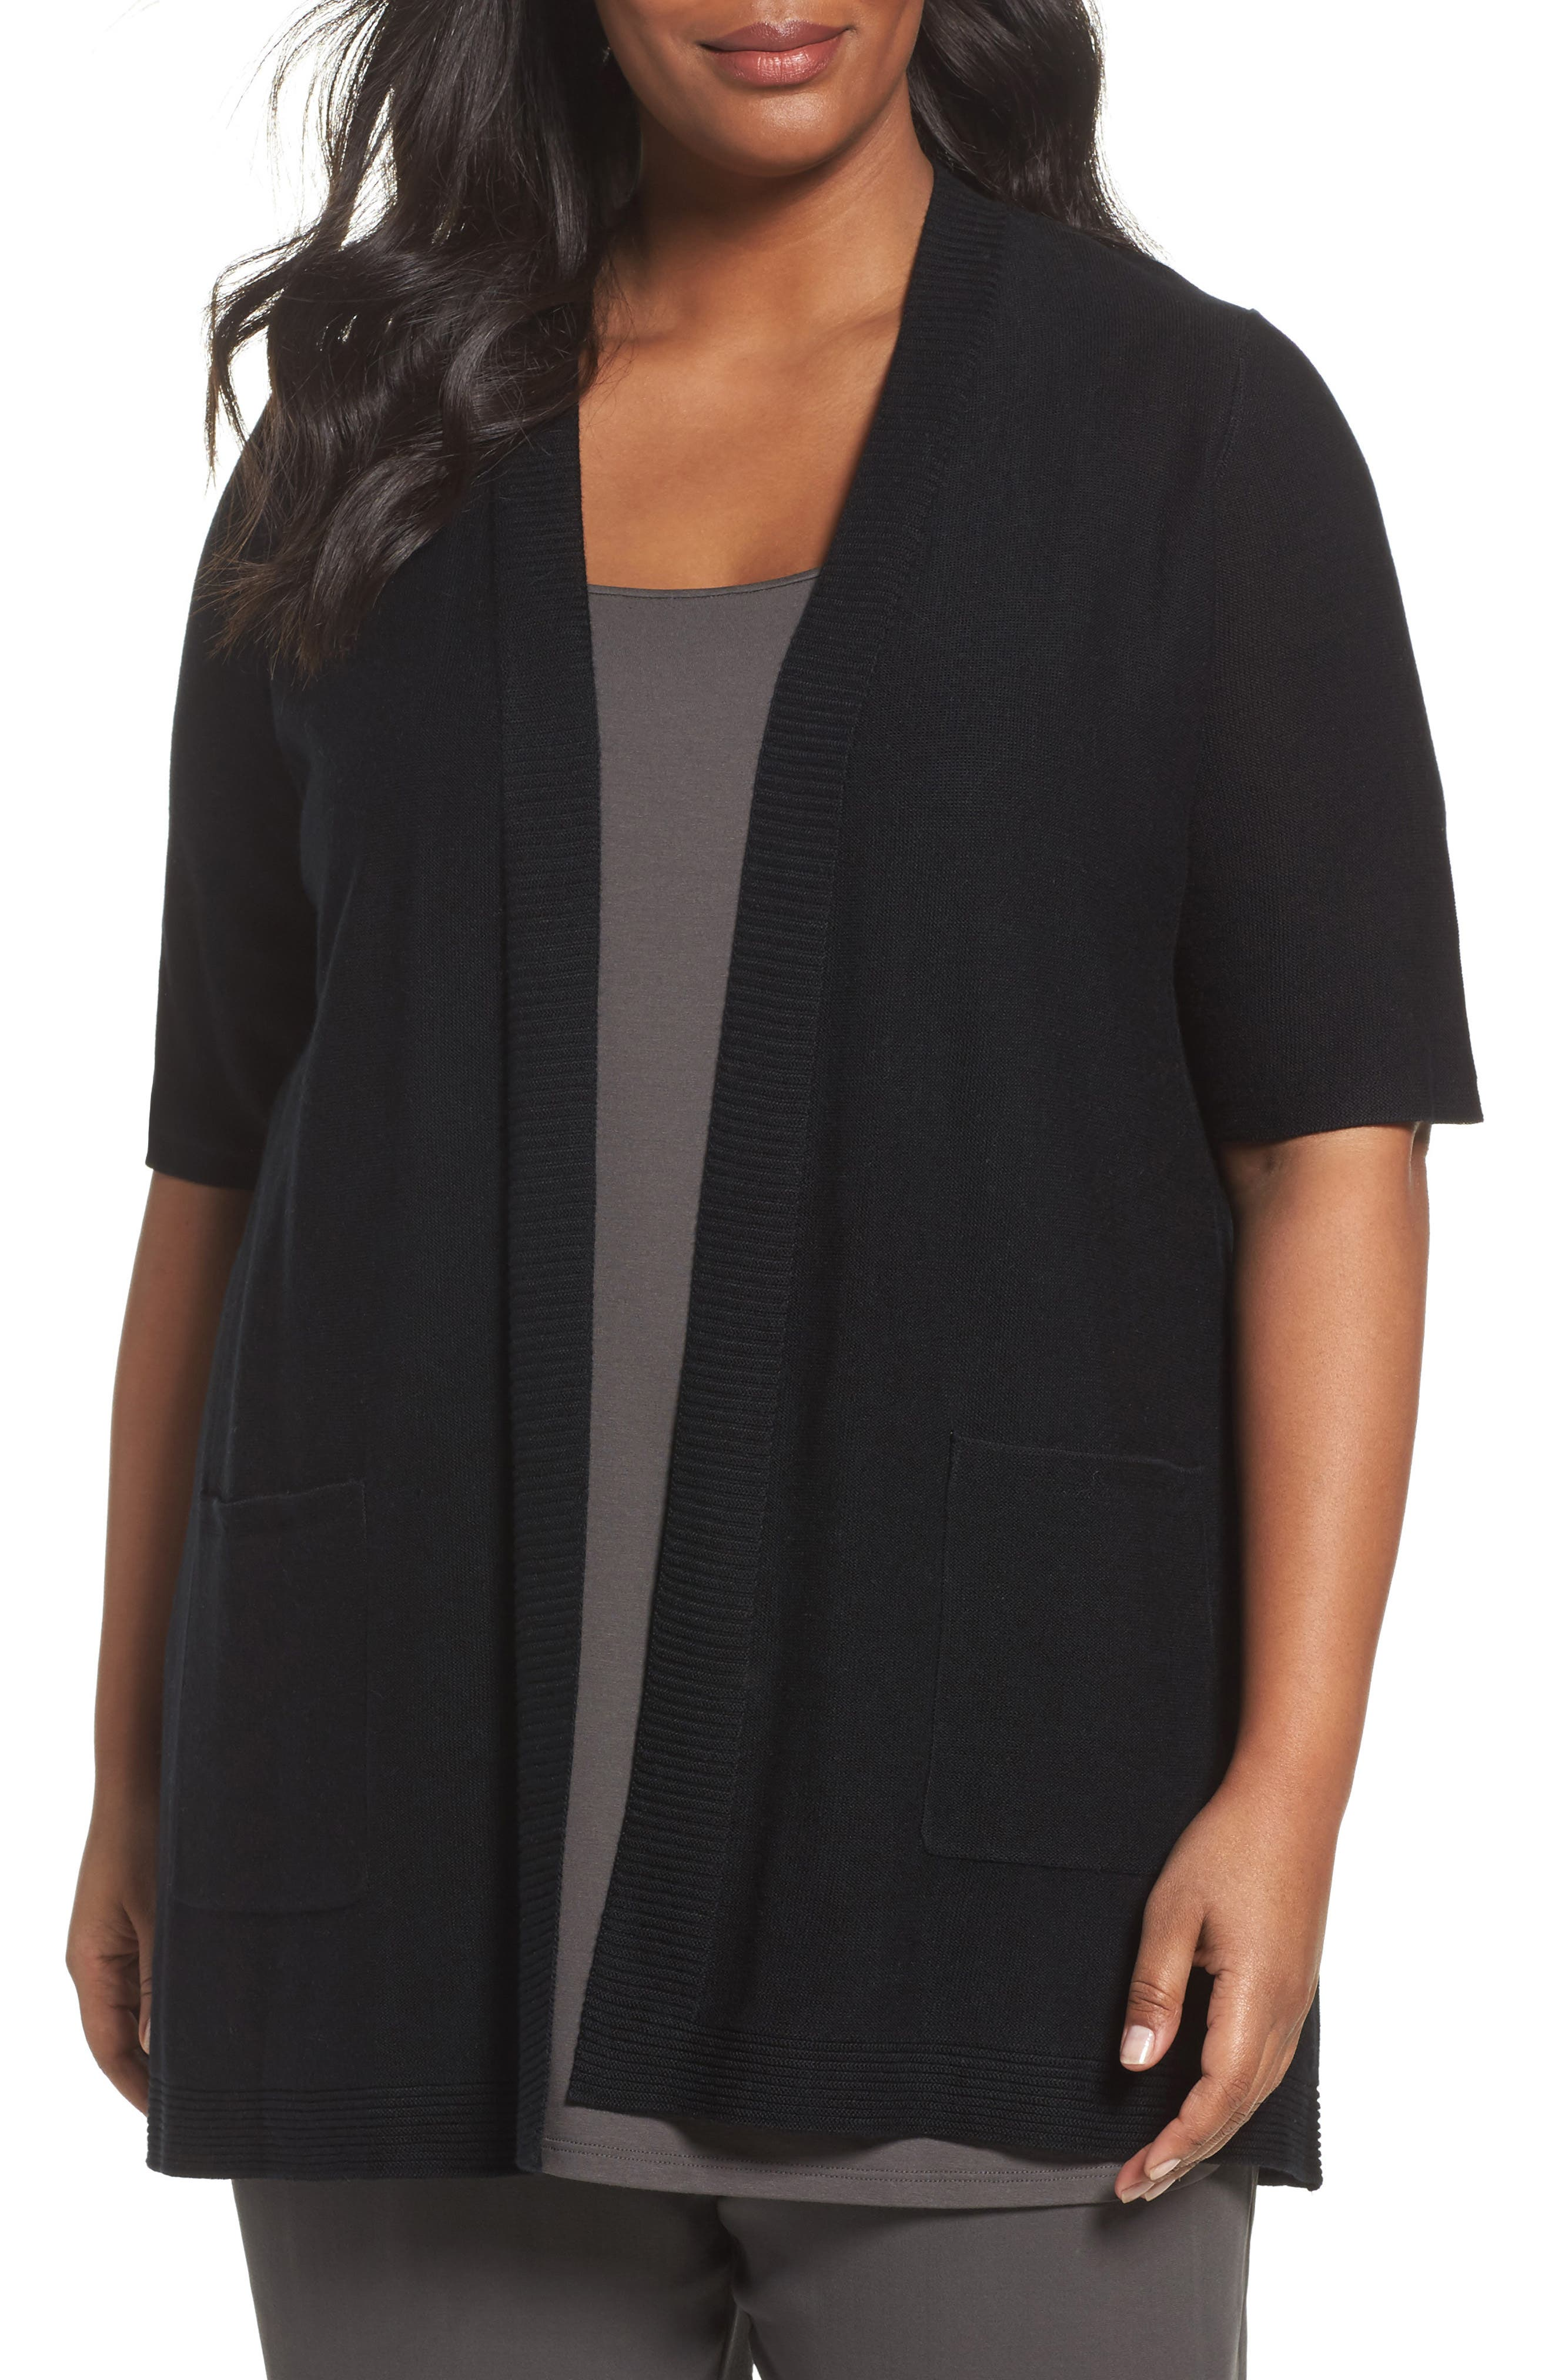 Eileen Fisher Simple Tencel® & Merino Wool Cardigan (Plus Size)